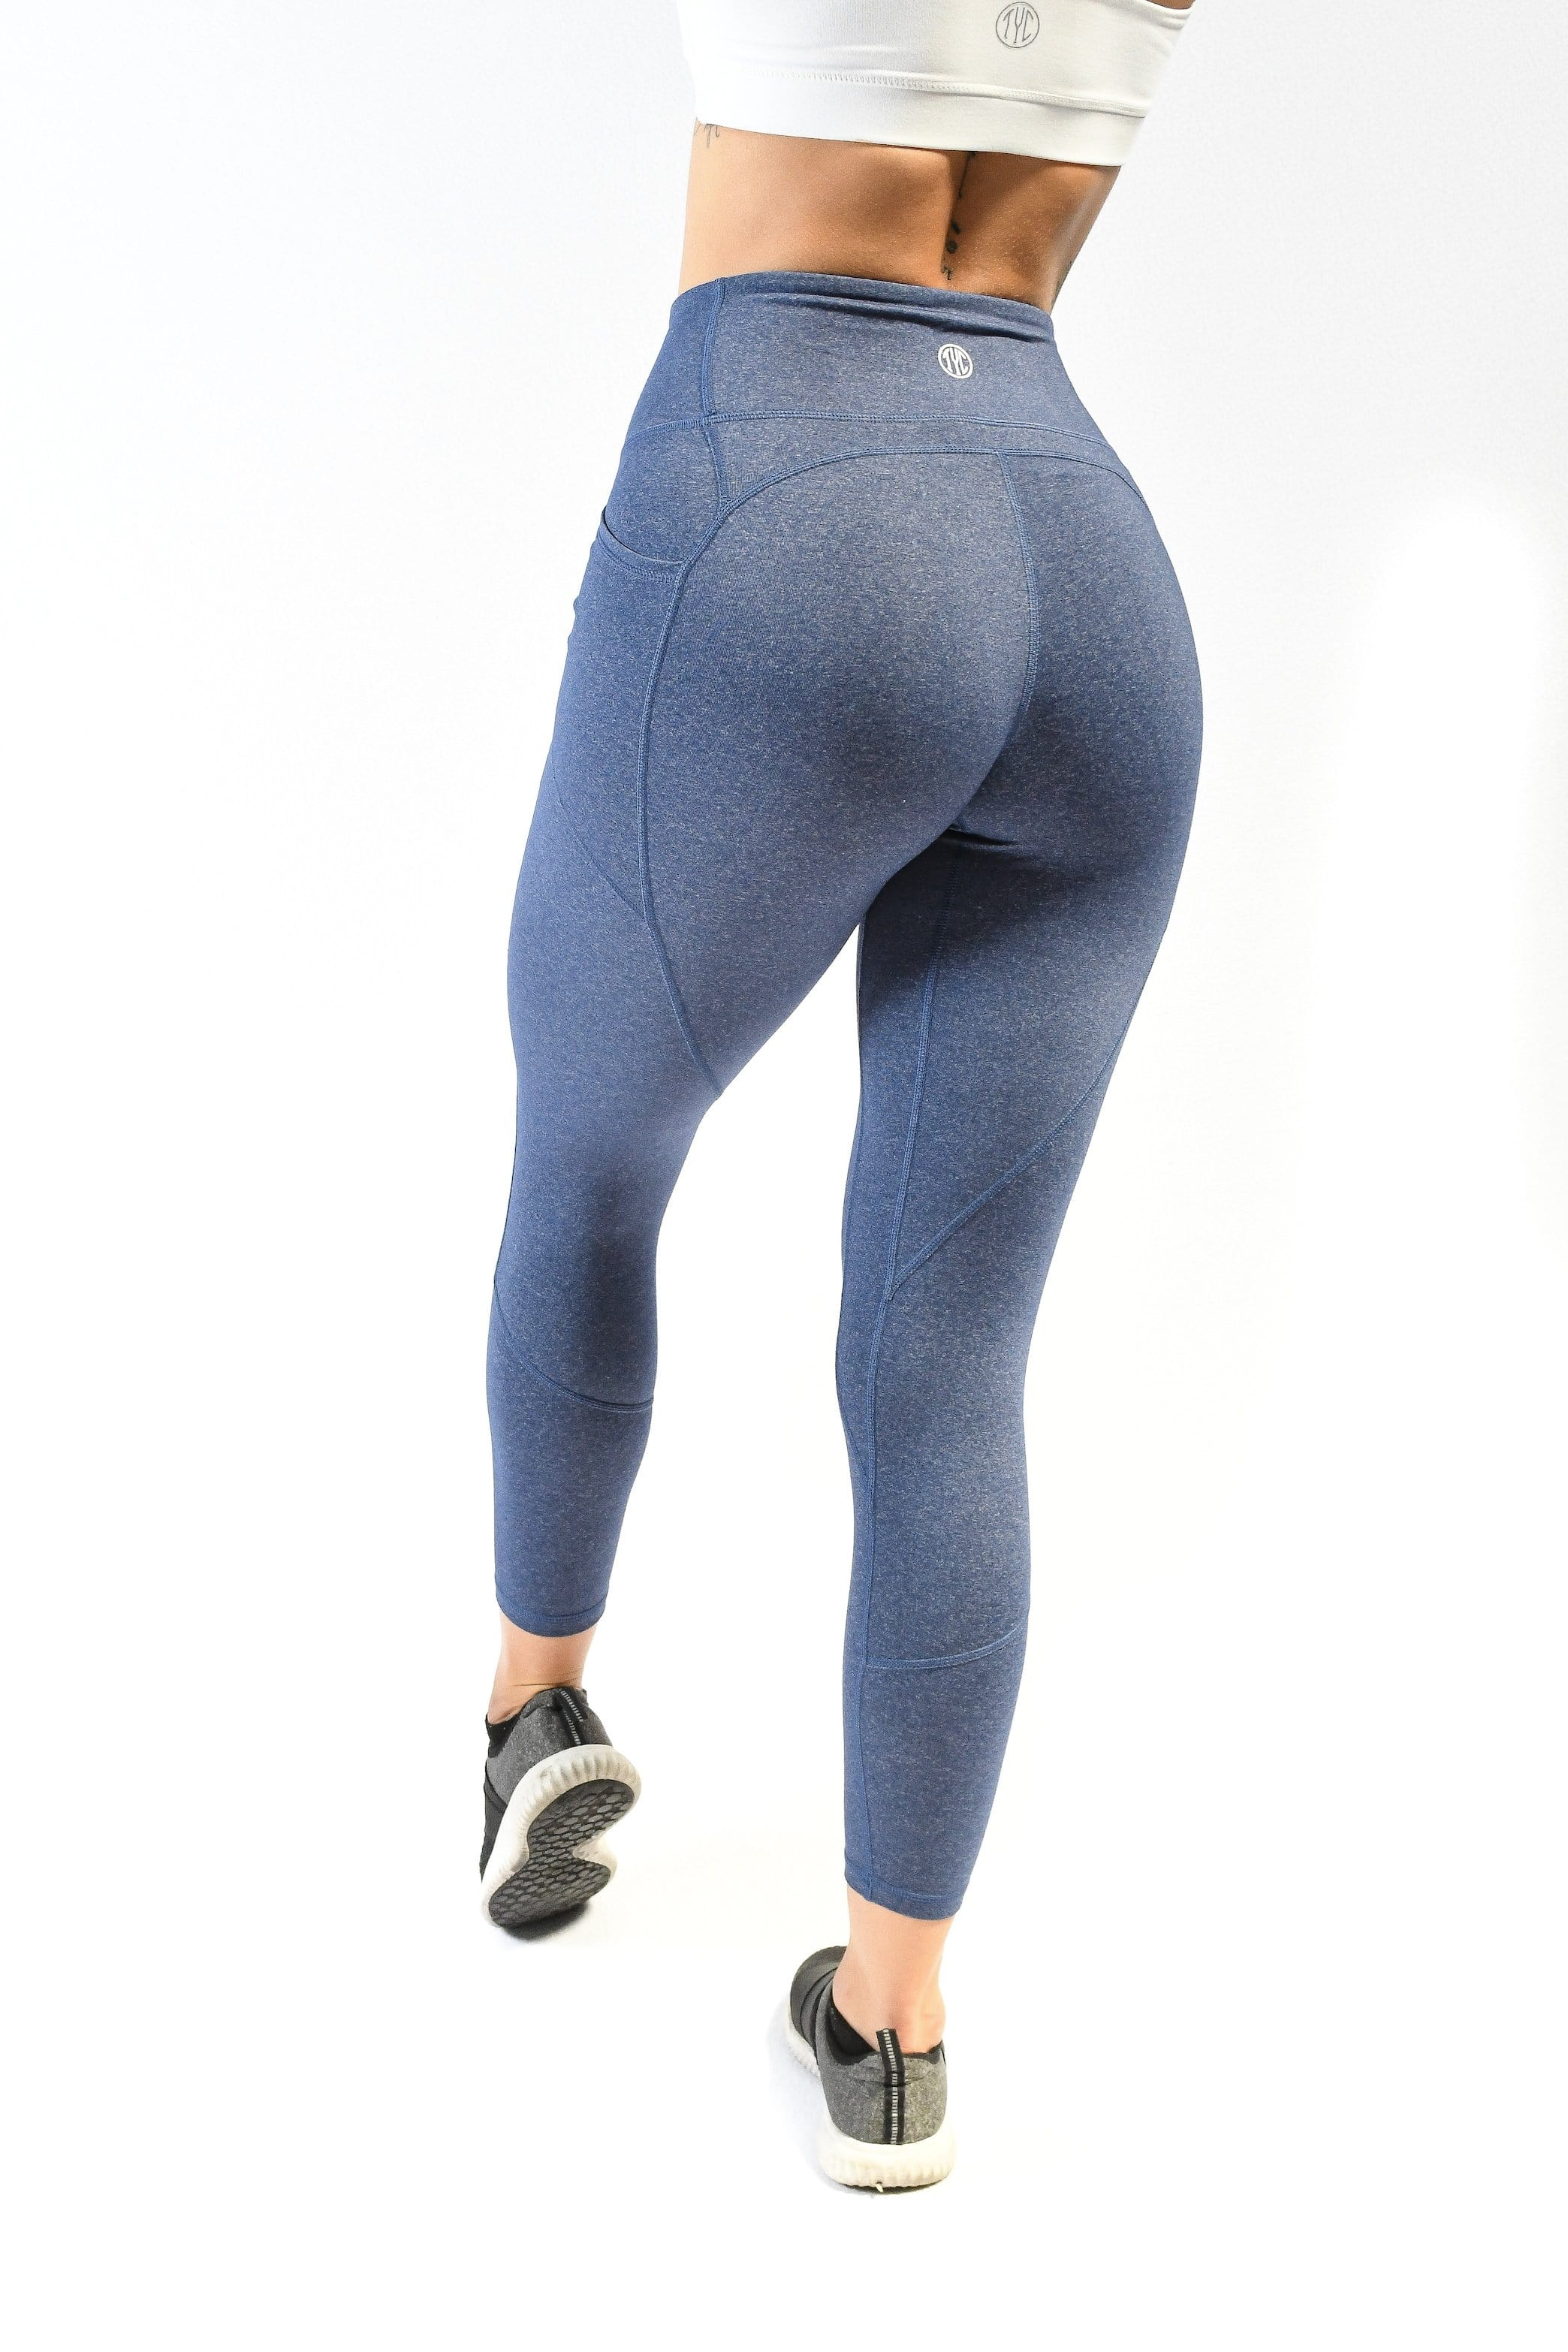 Resilient Heart Booty Leggings- Speckled Blue